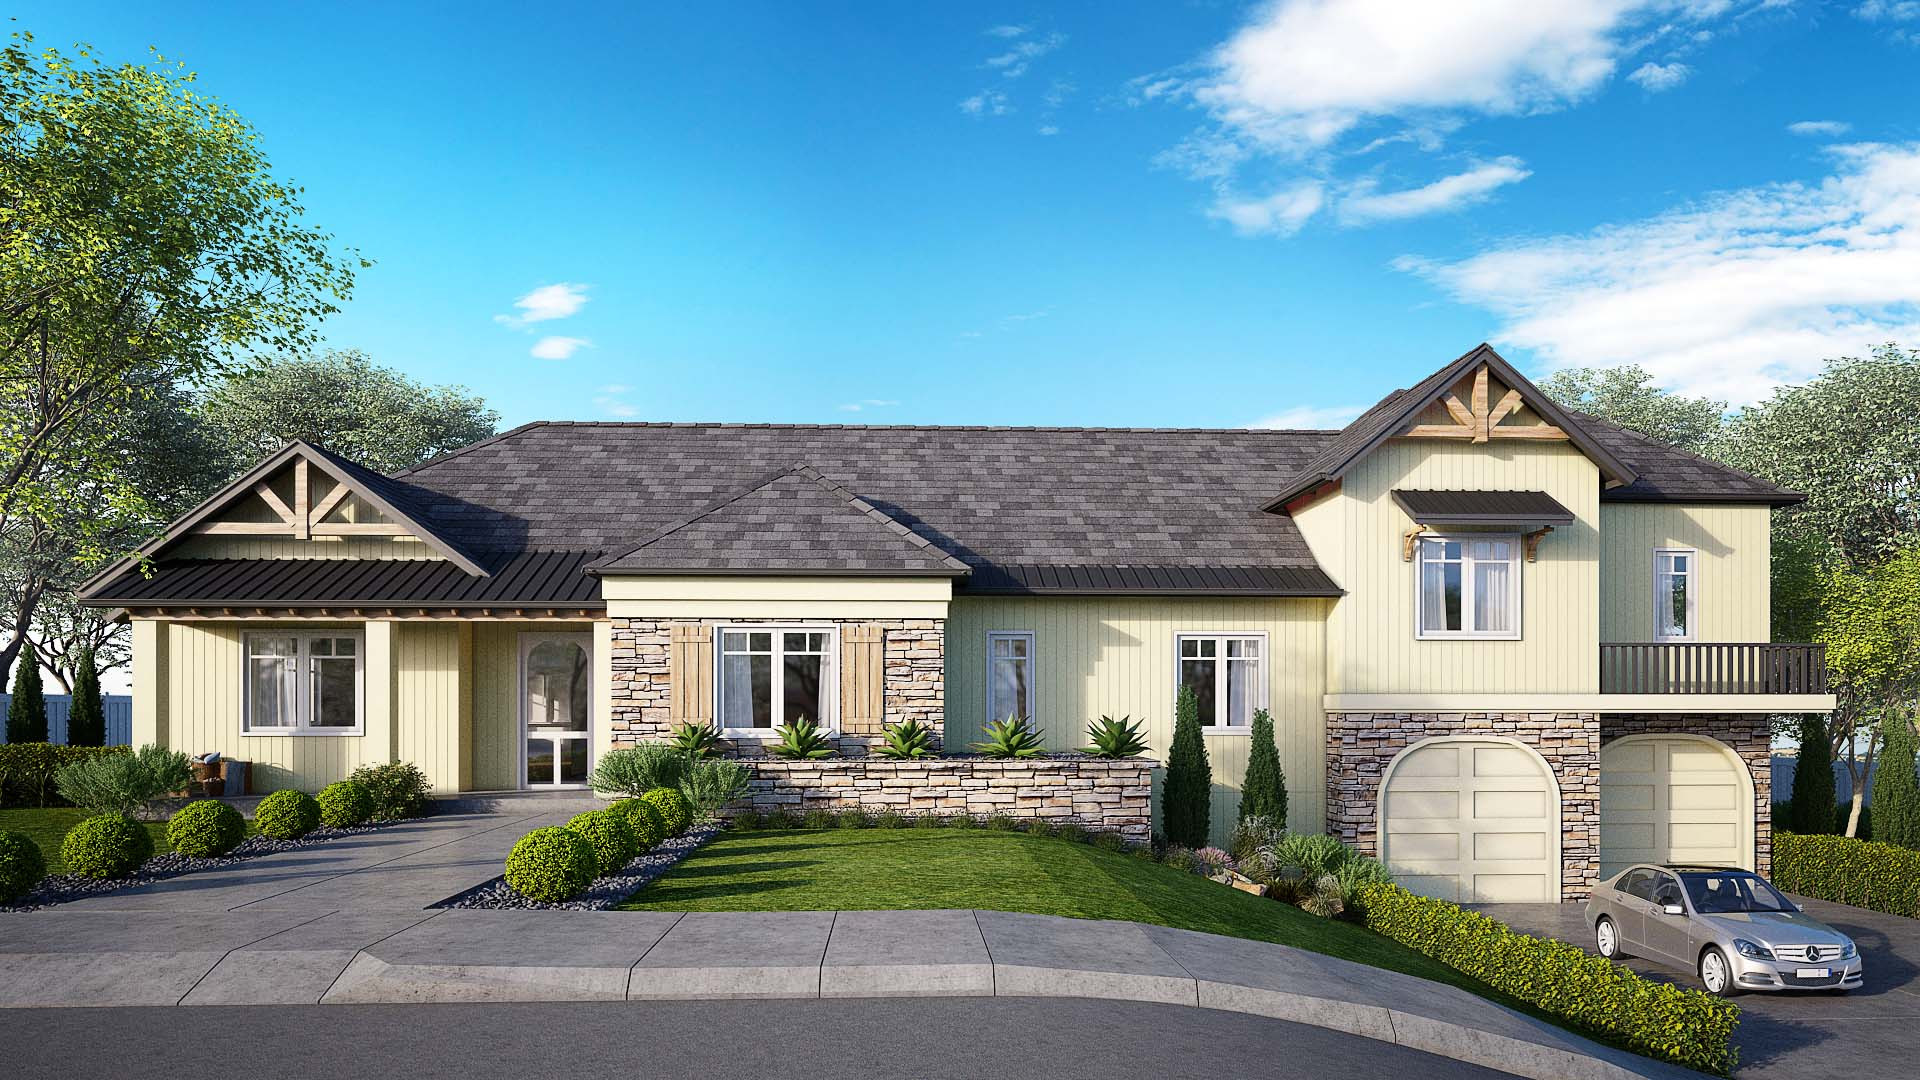 80 Indy Circle, Soquel - Front.jpg